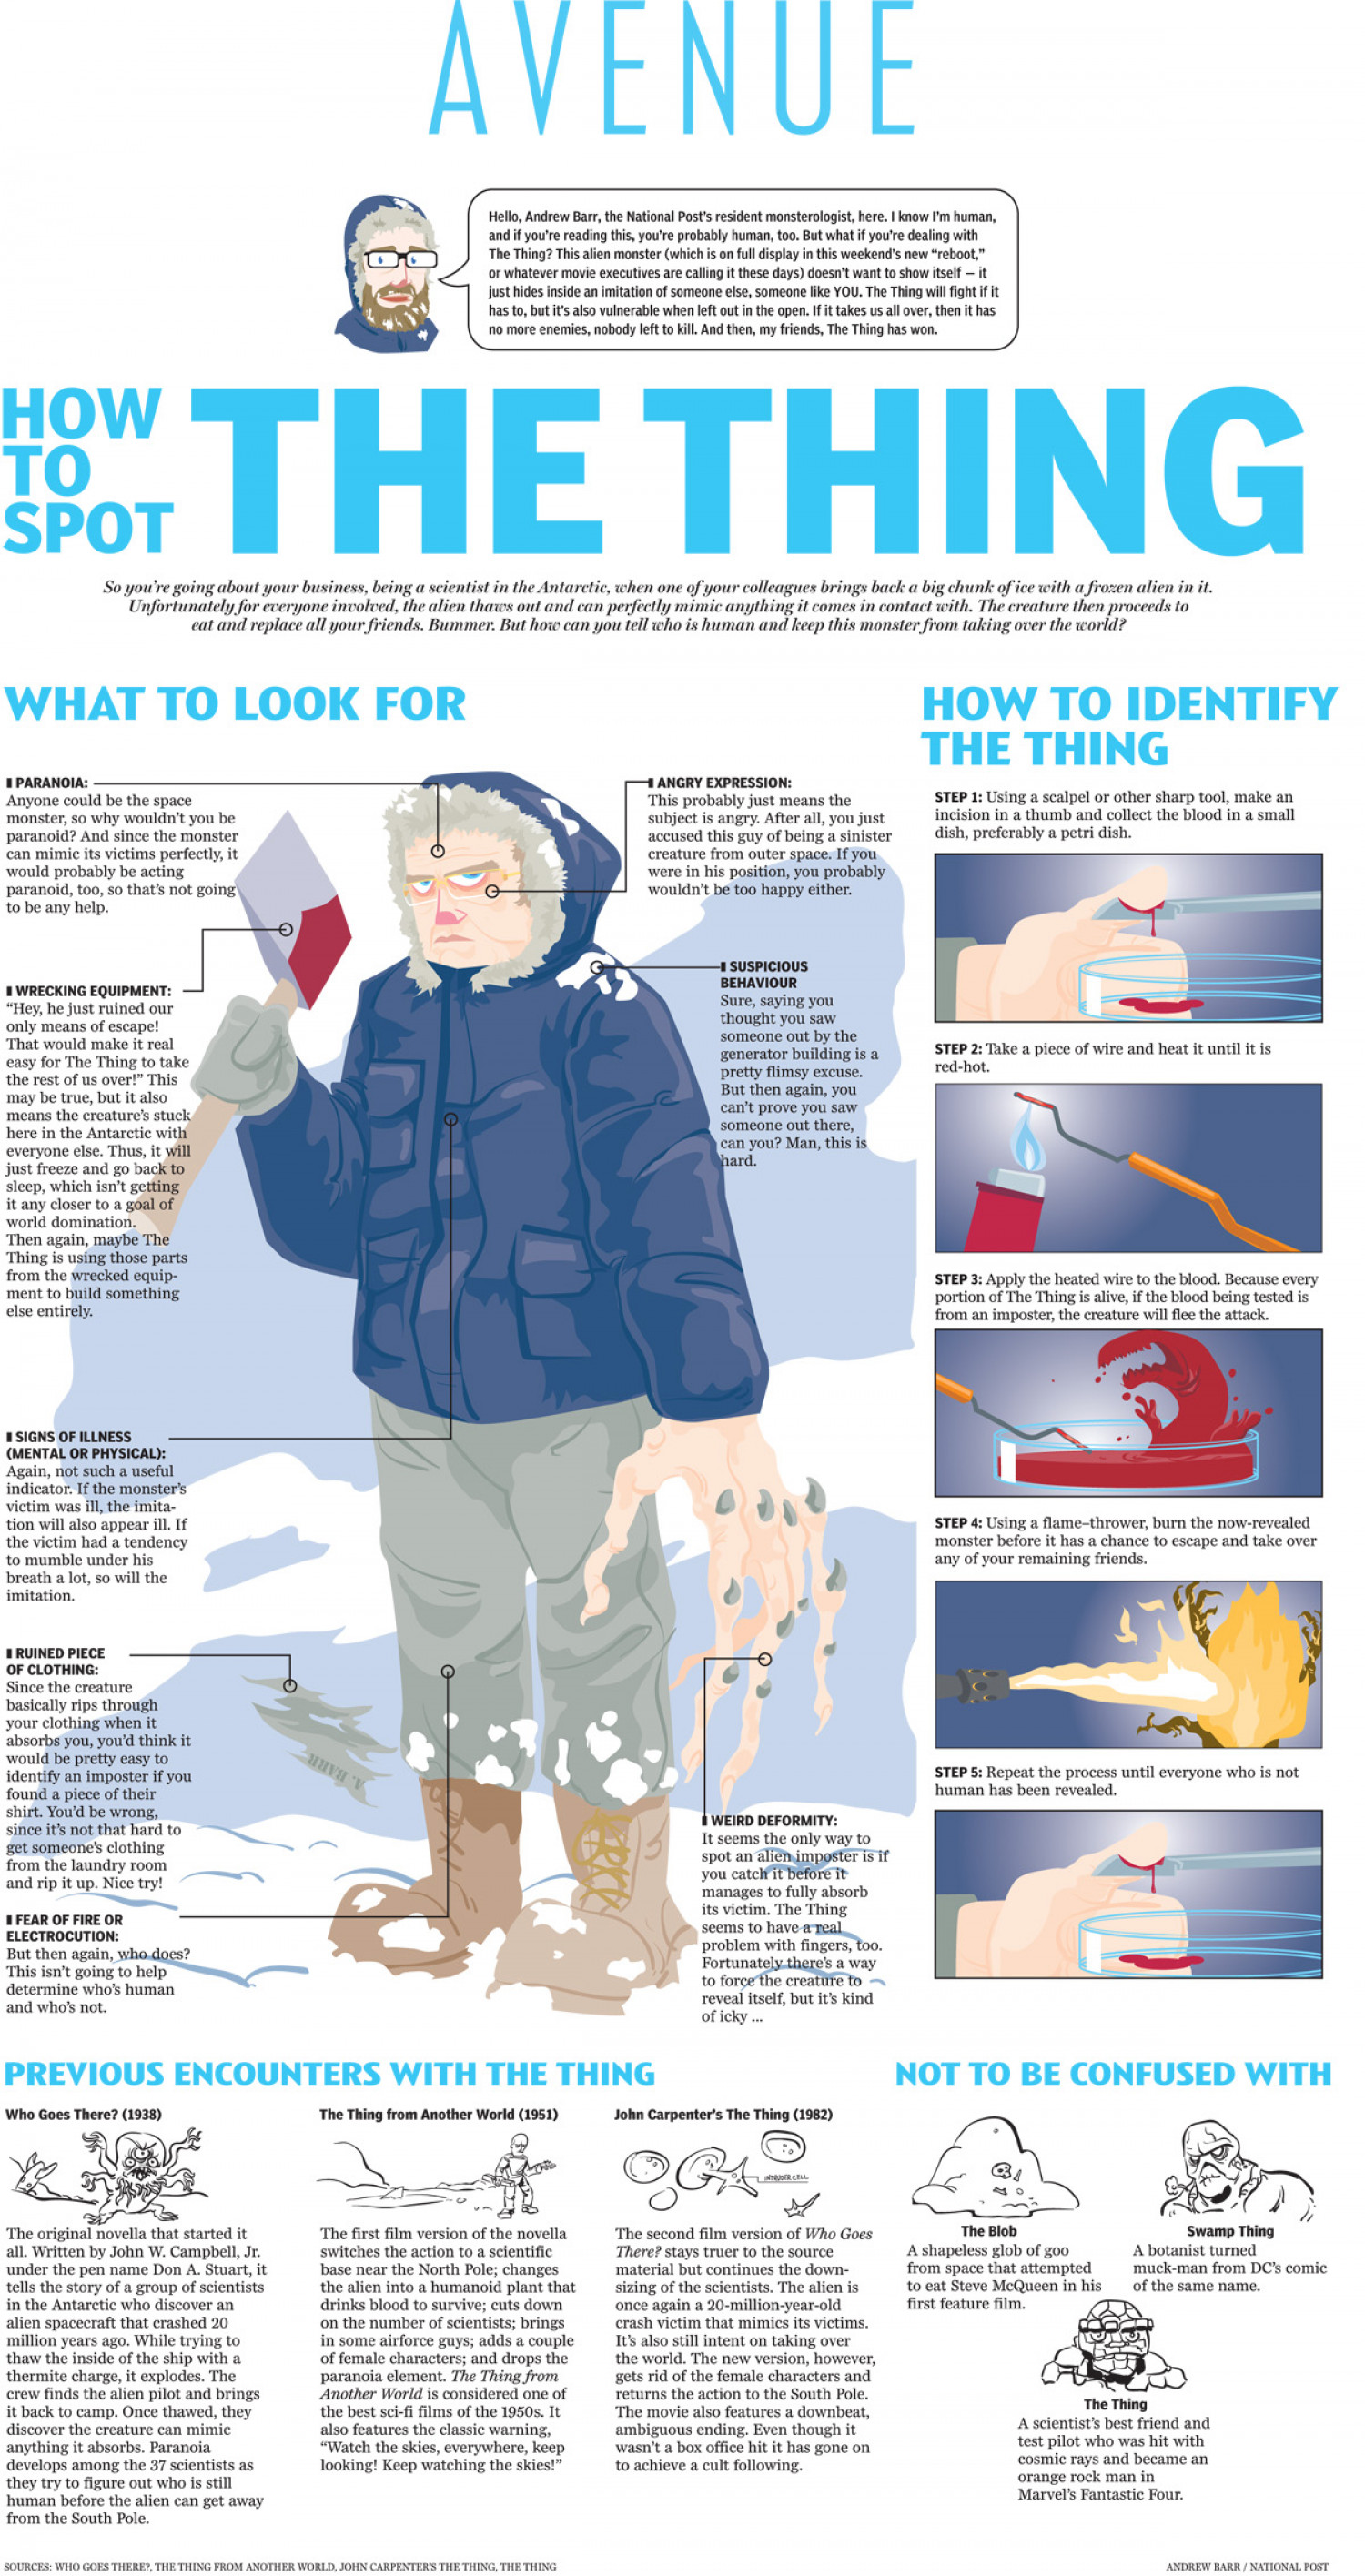 How to Spot The Thing Infographic